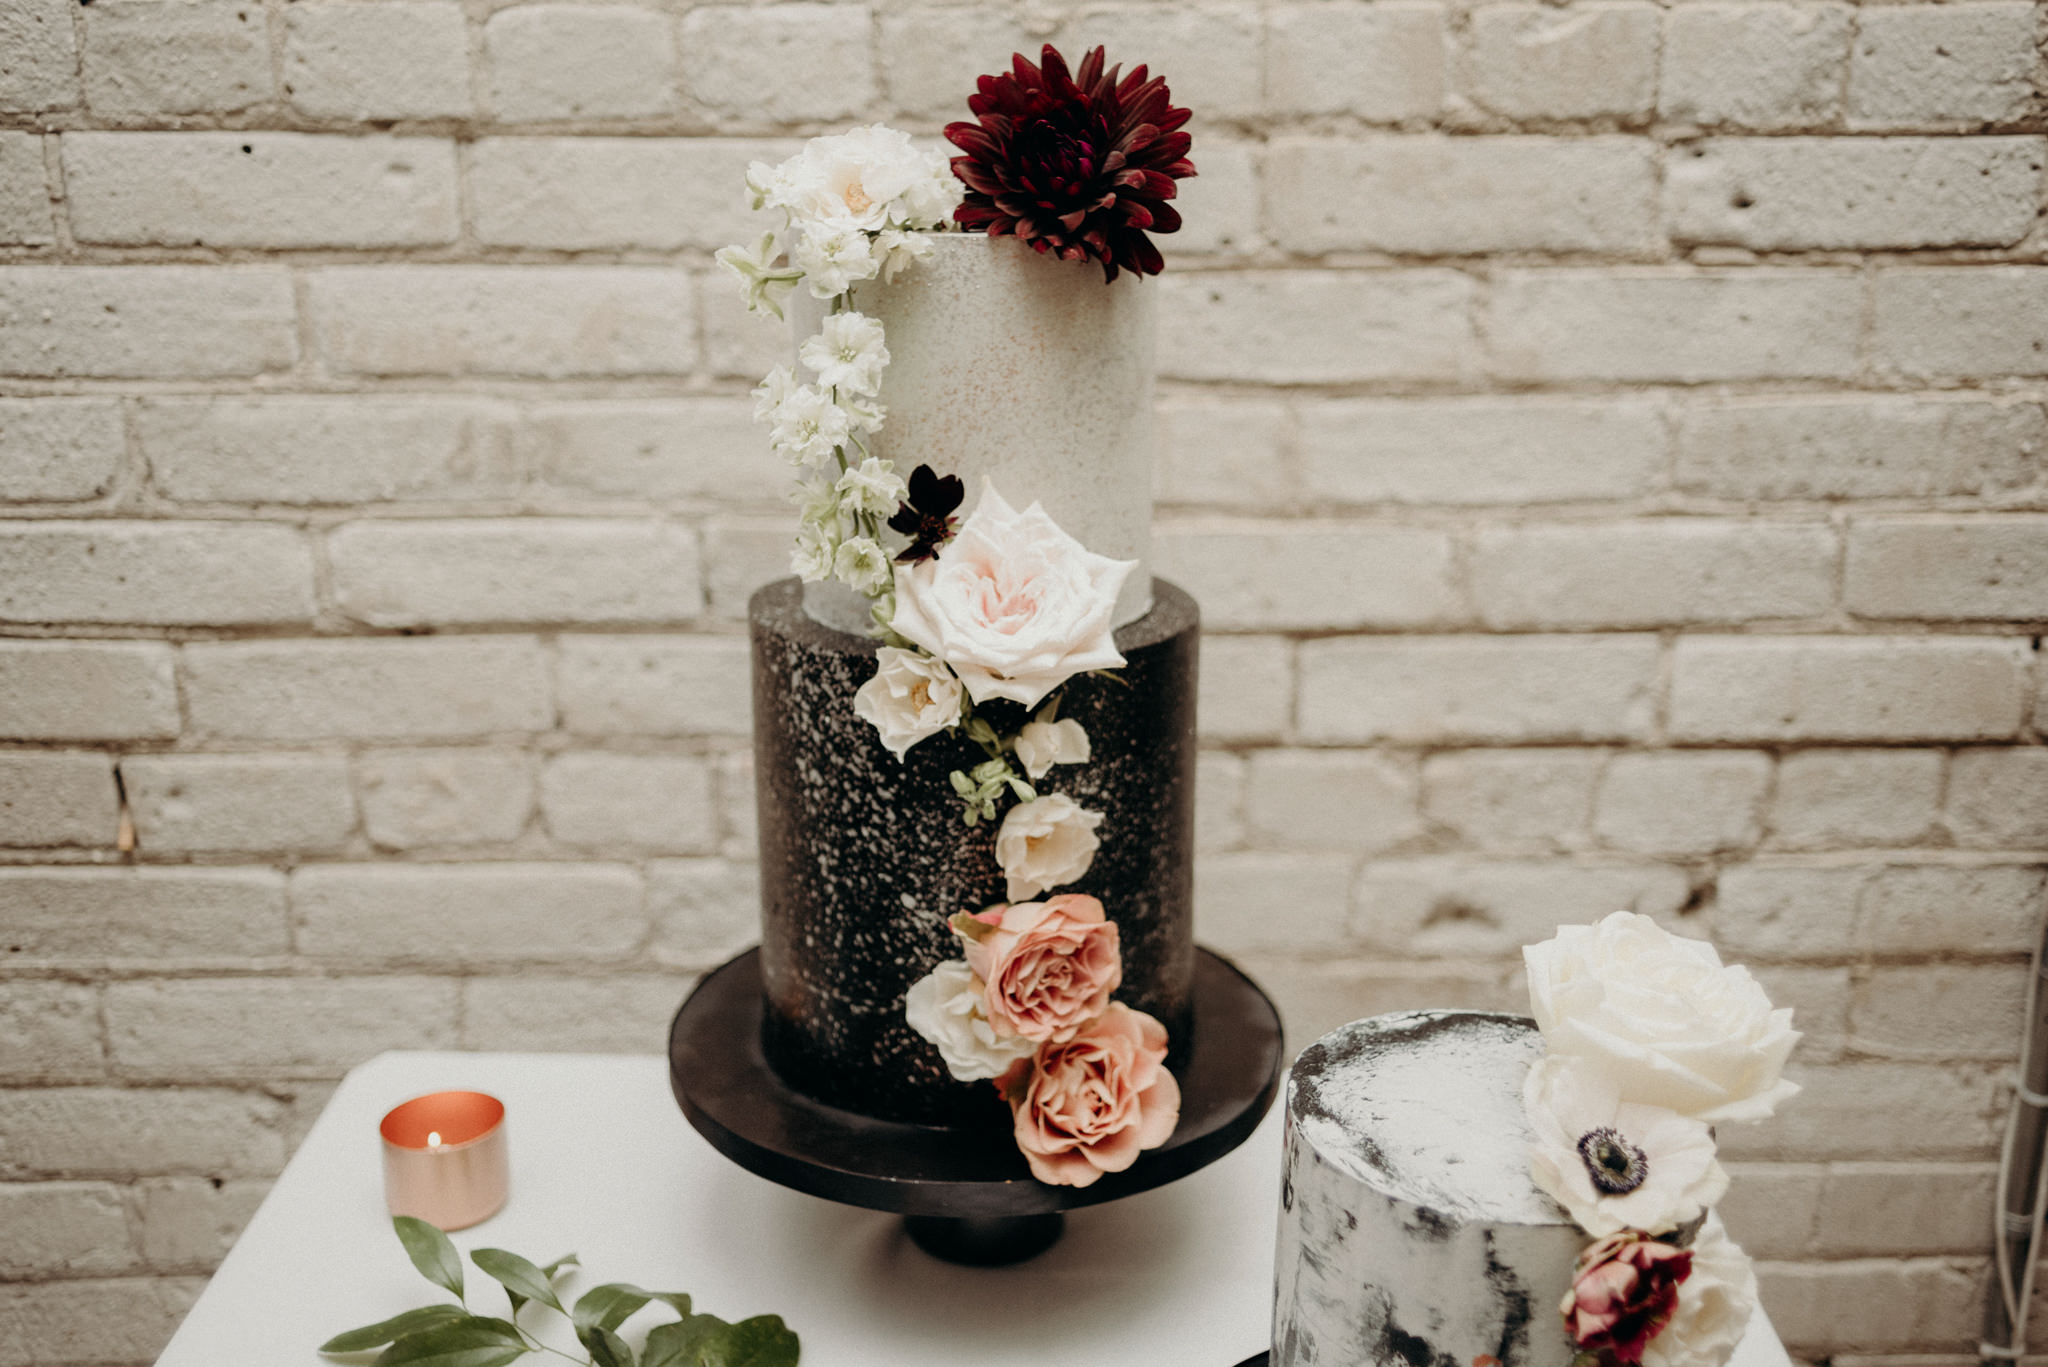 White and black tiered cake with lots of fresh flowers